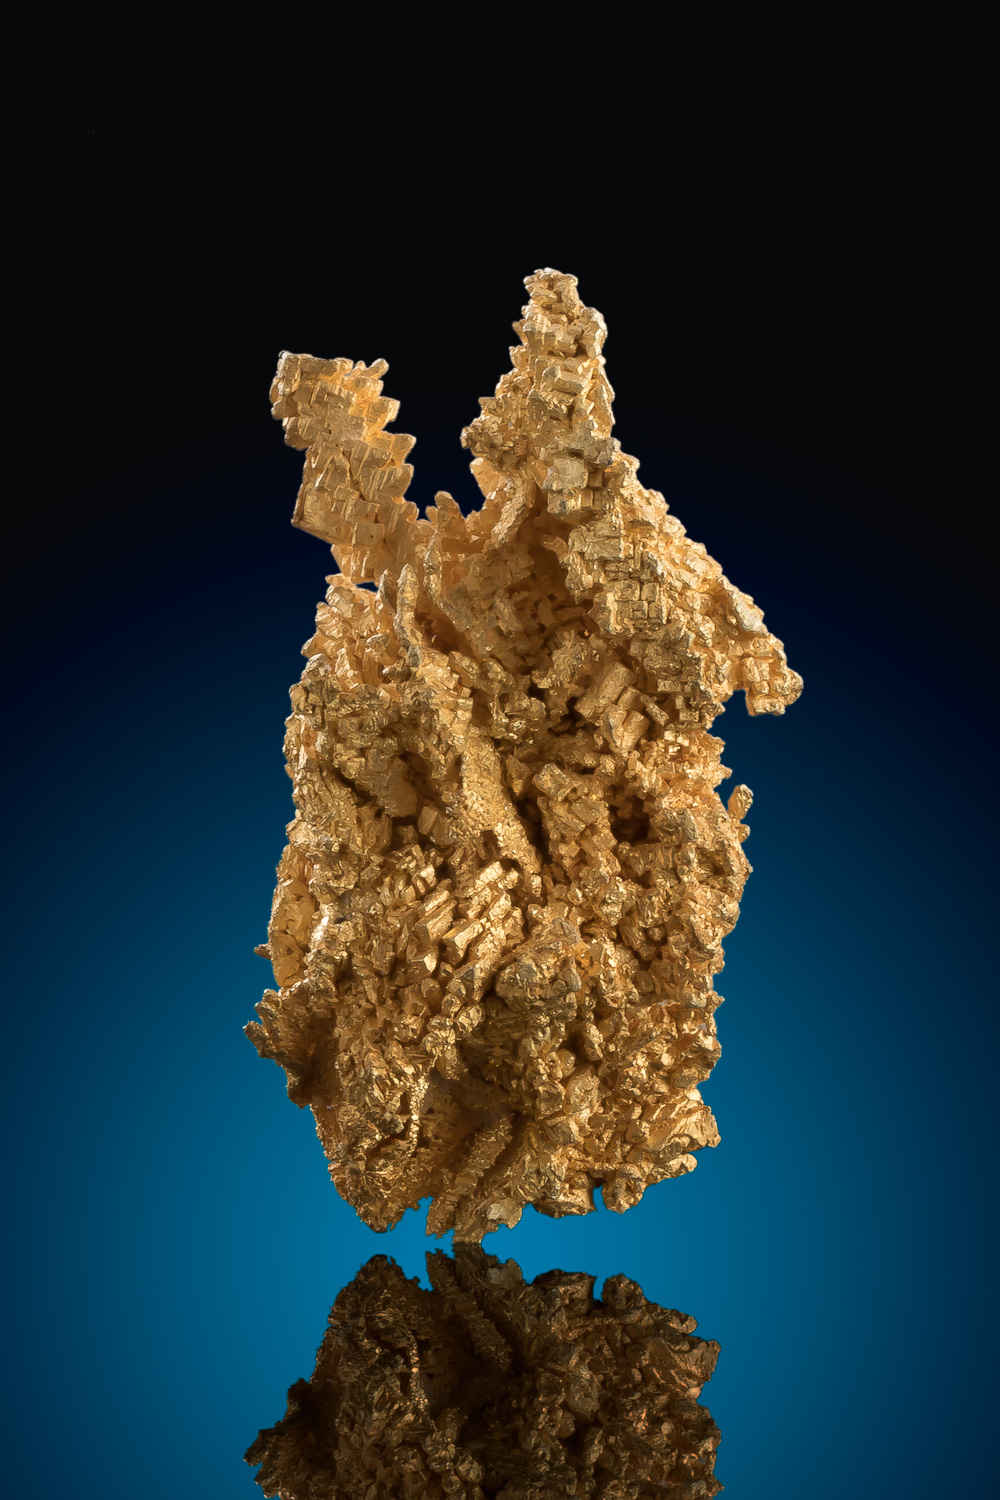 Sharp Stacked Trigon Gold Nugget Crystal - Round Mountain Nevada